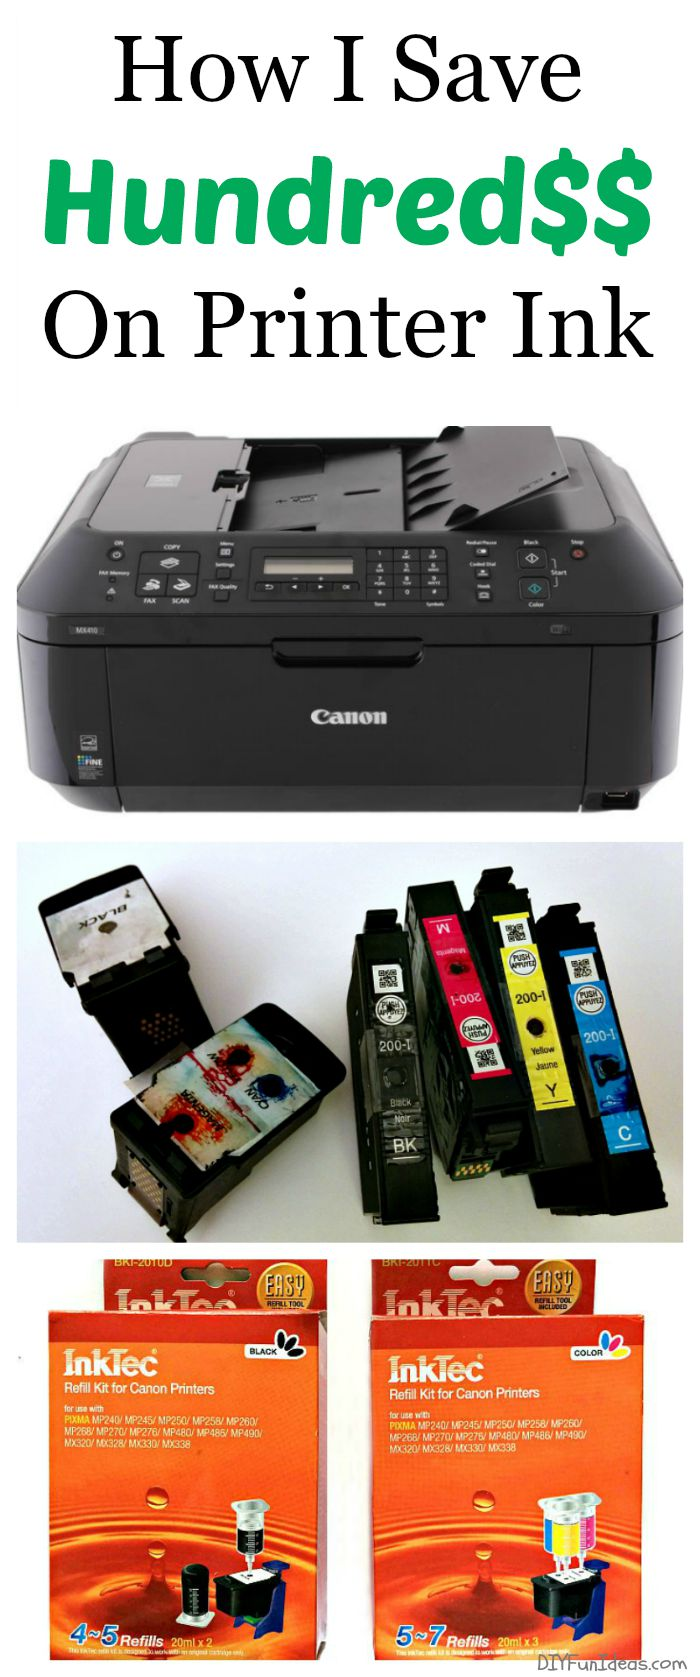 HOW I SAVE HUNDRED$$ ON PRINTER INK